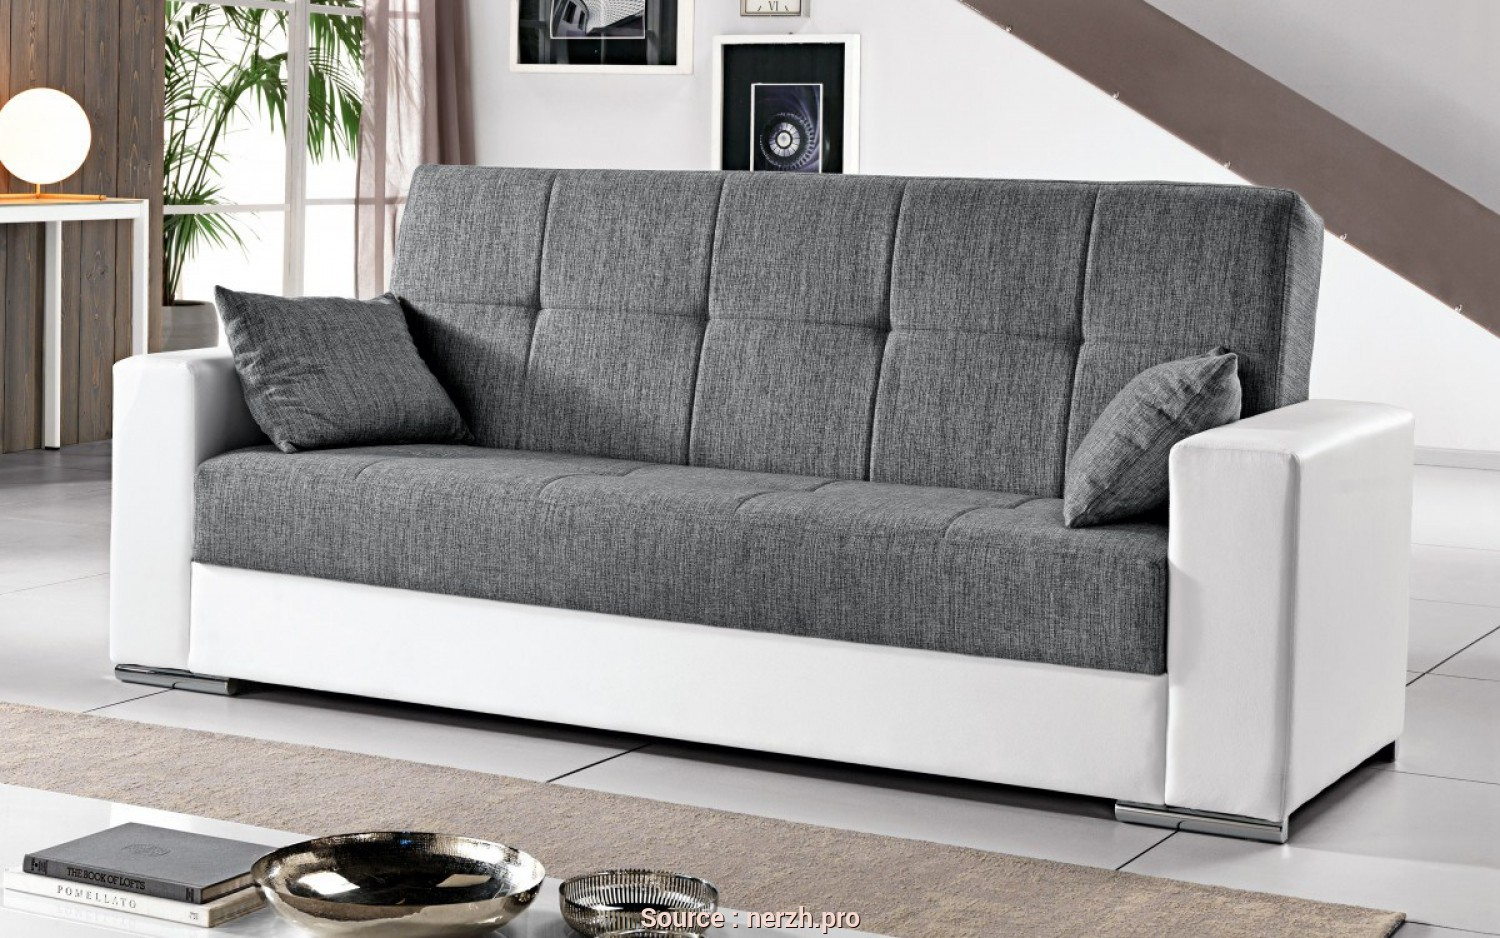 Completare 4 poltrone e sofa svuota tutto 99 euro jake for Poltrone e sofa